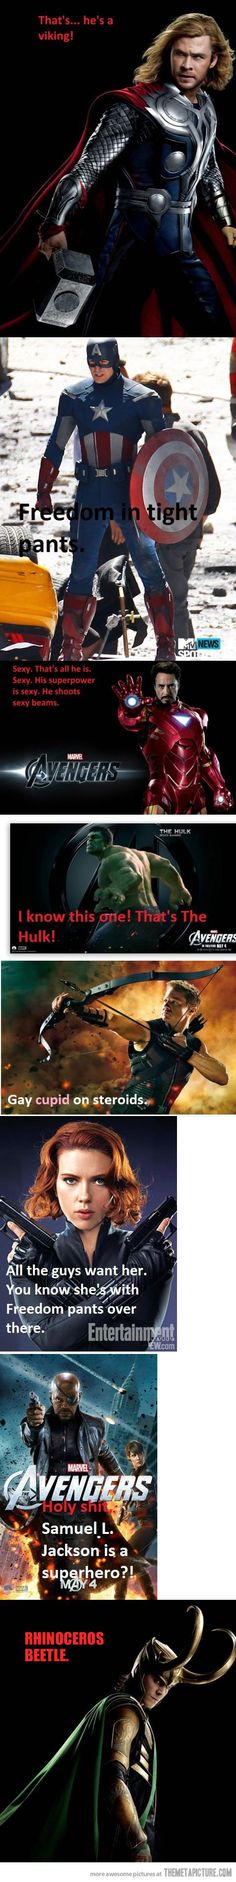 How my mom would have seen the Avengers...